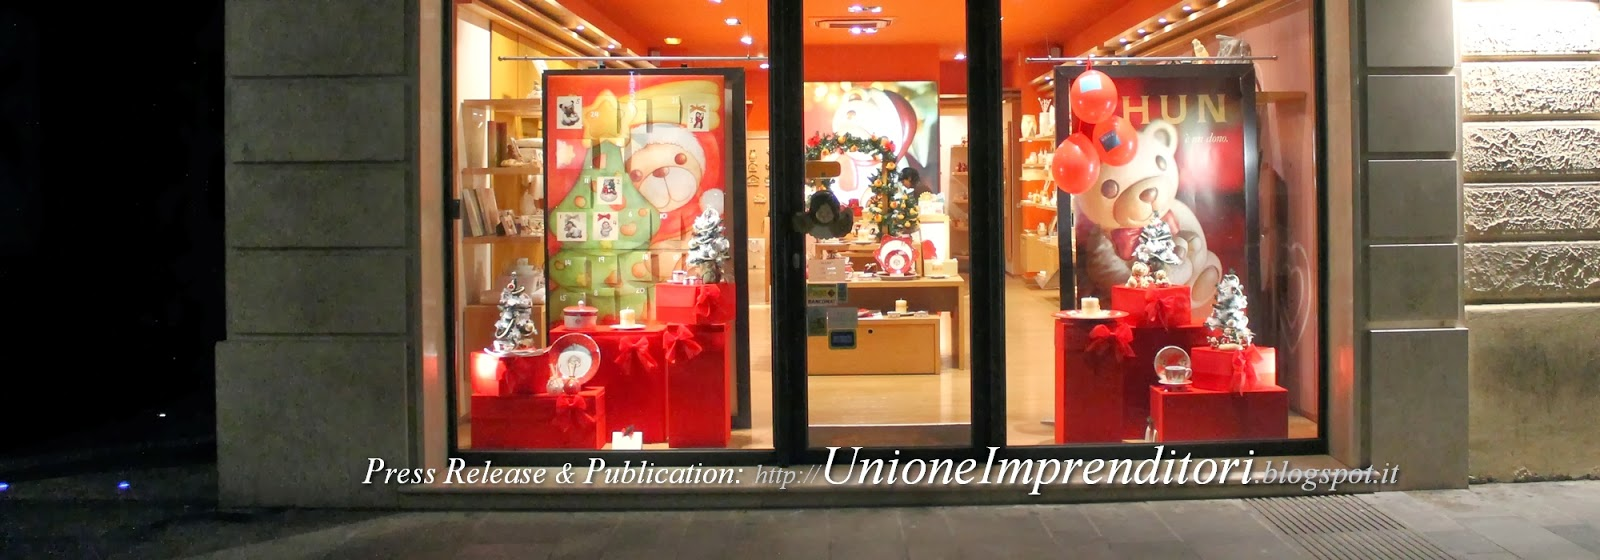 Unione imprenditori thun f w collection 2013 2014 for Thun san valentino 2017